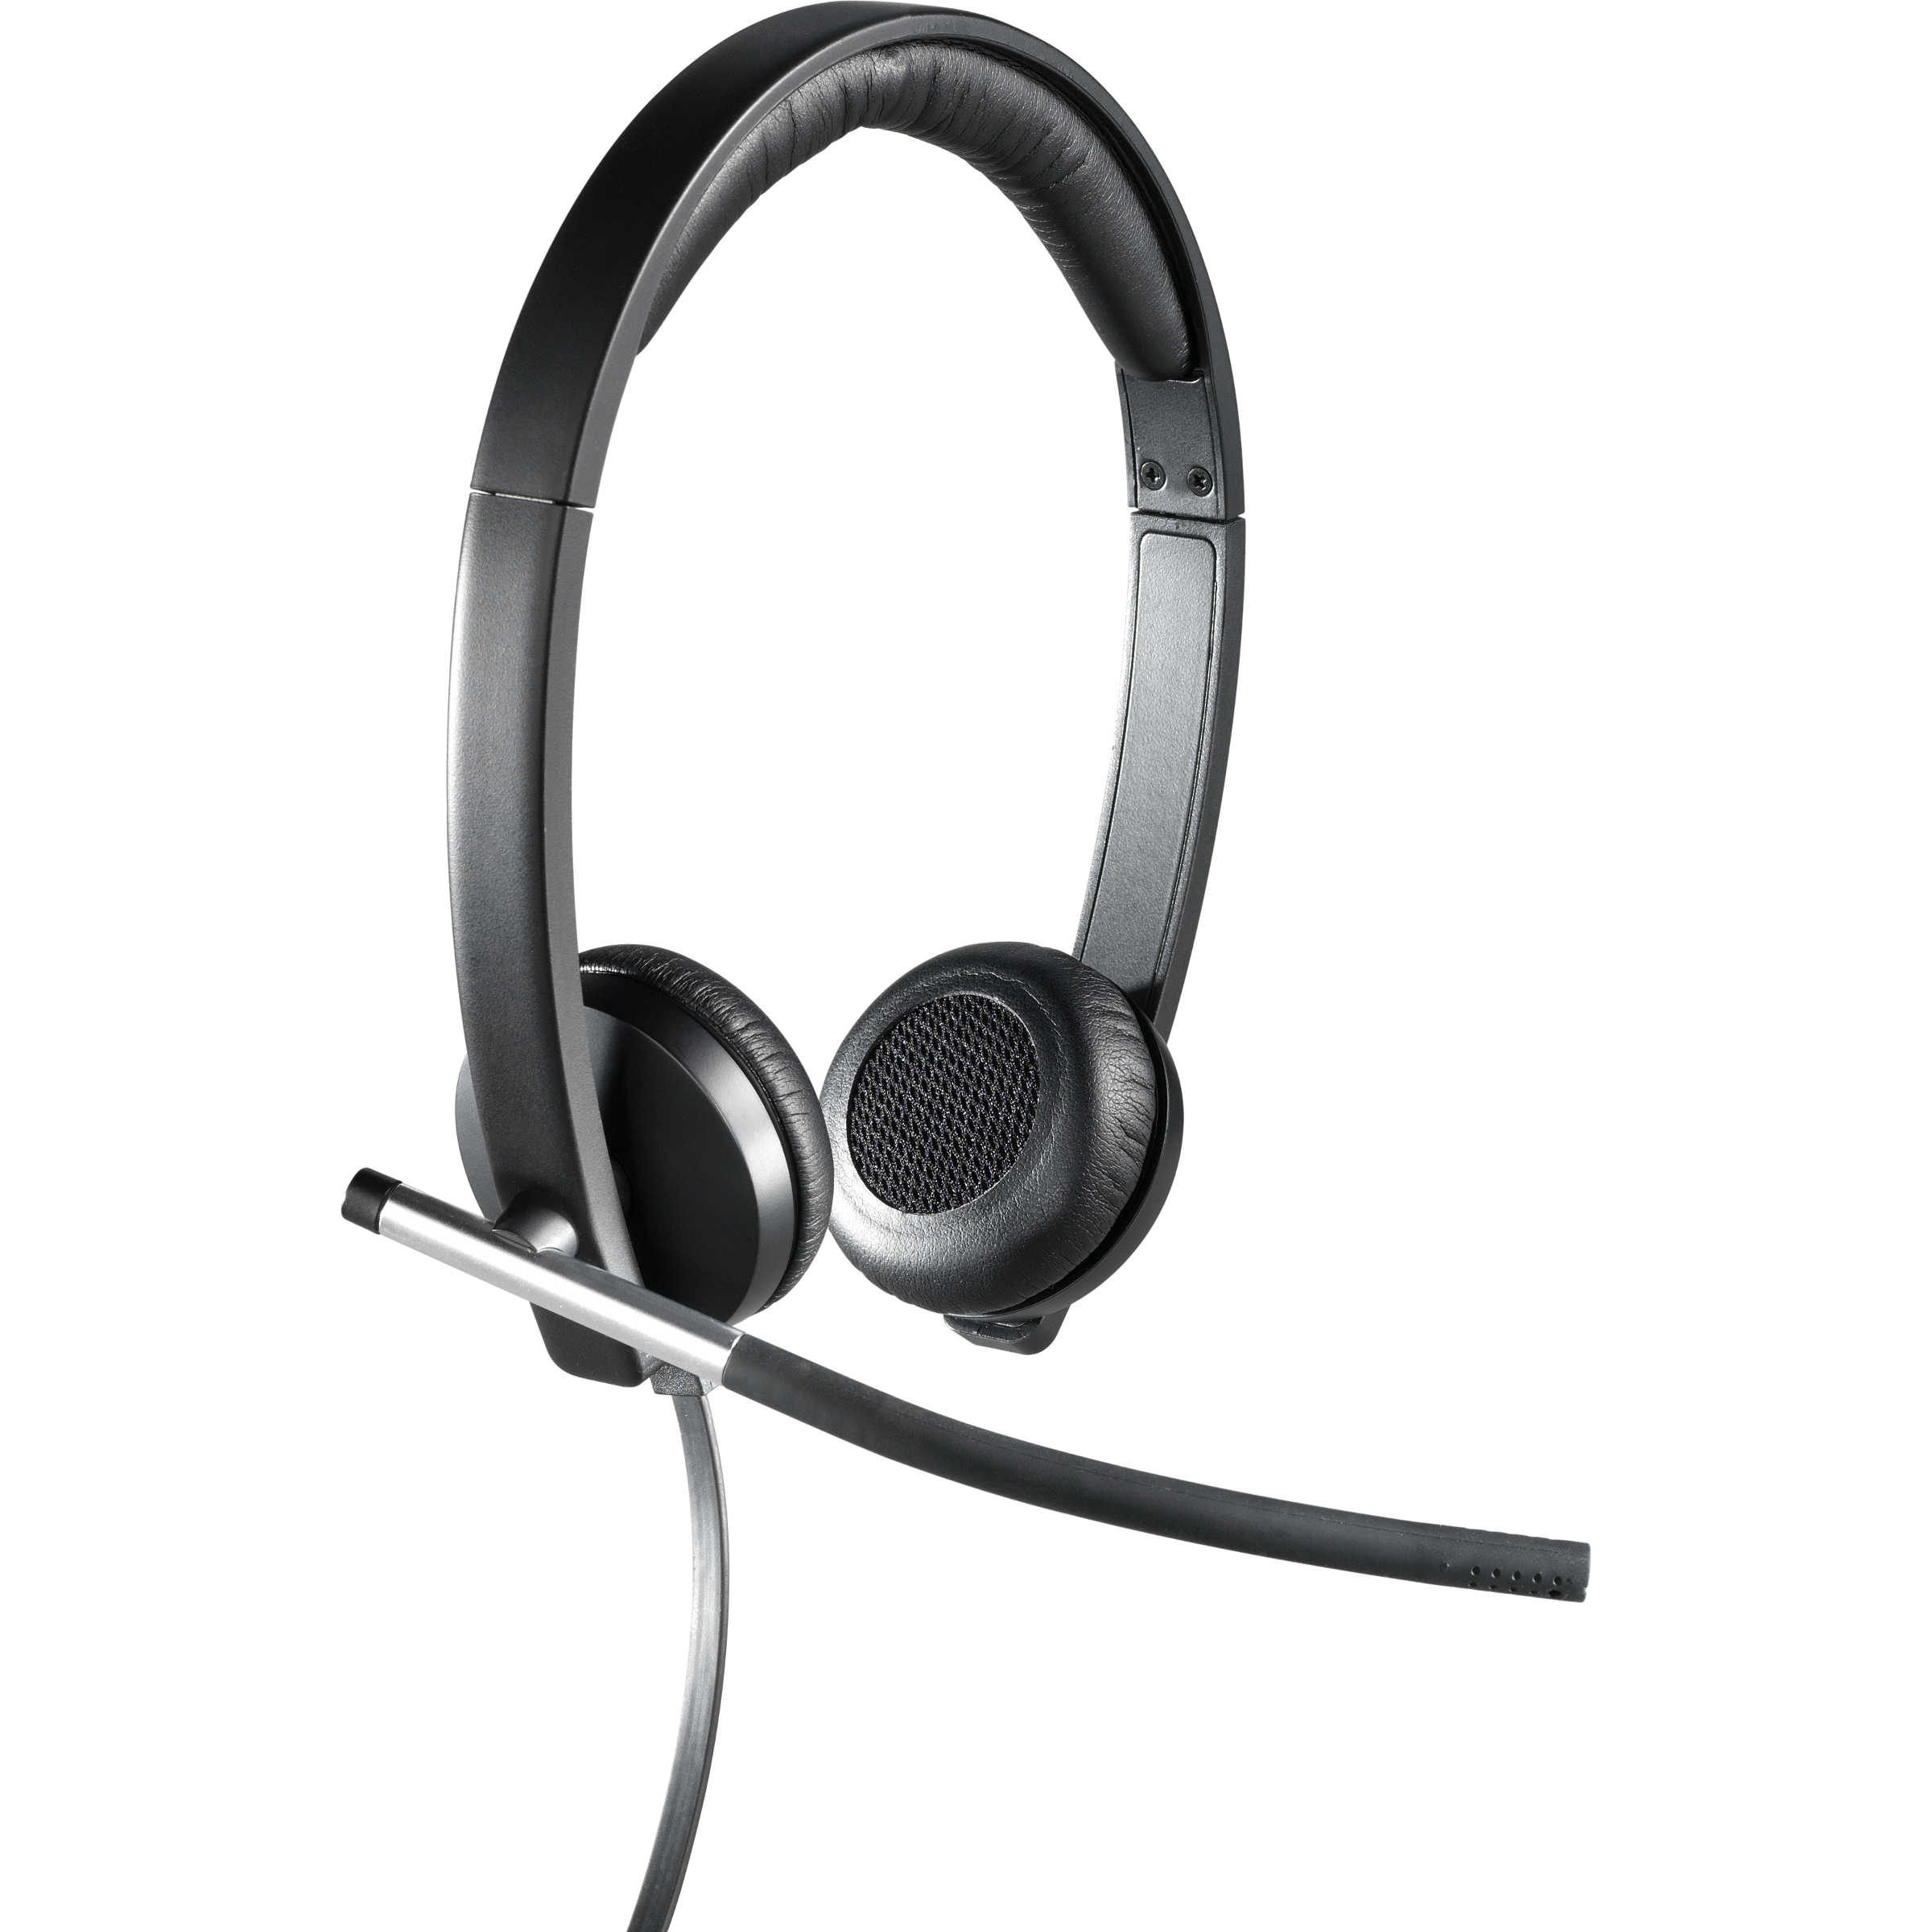 Logitech H650e Wired Headset - Over-the-head - Supra-aural - 50 Hz - 10 kHz - USB